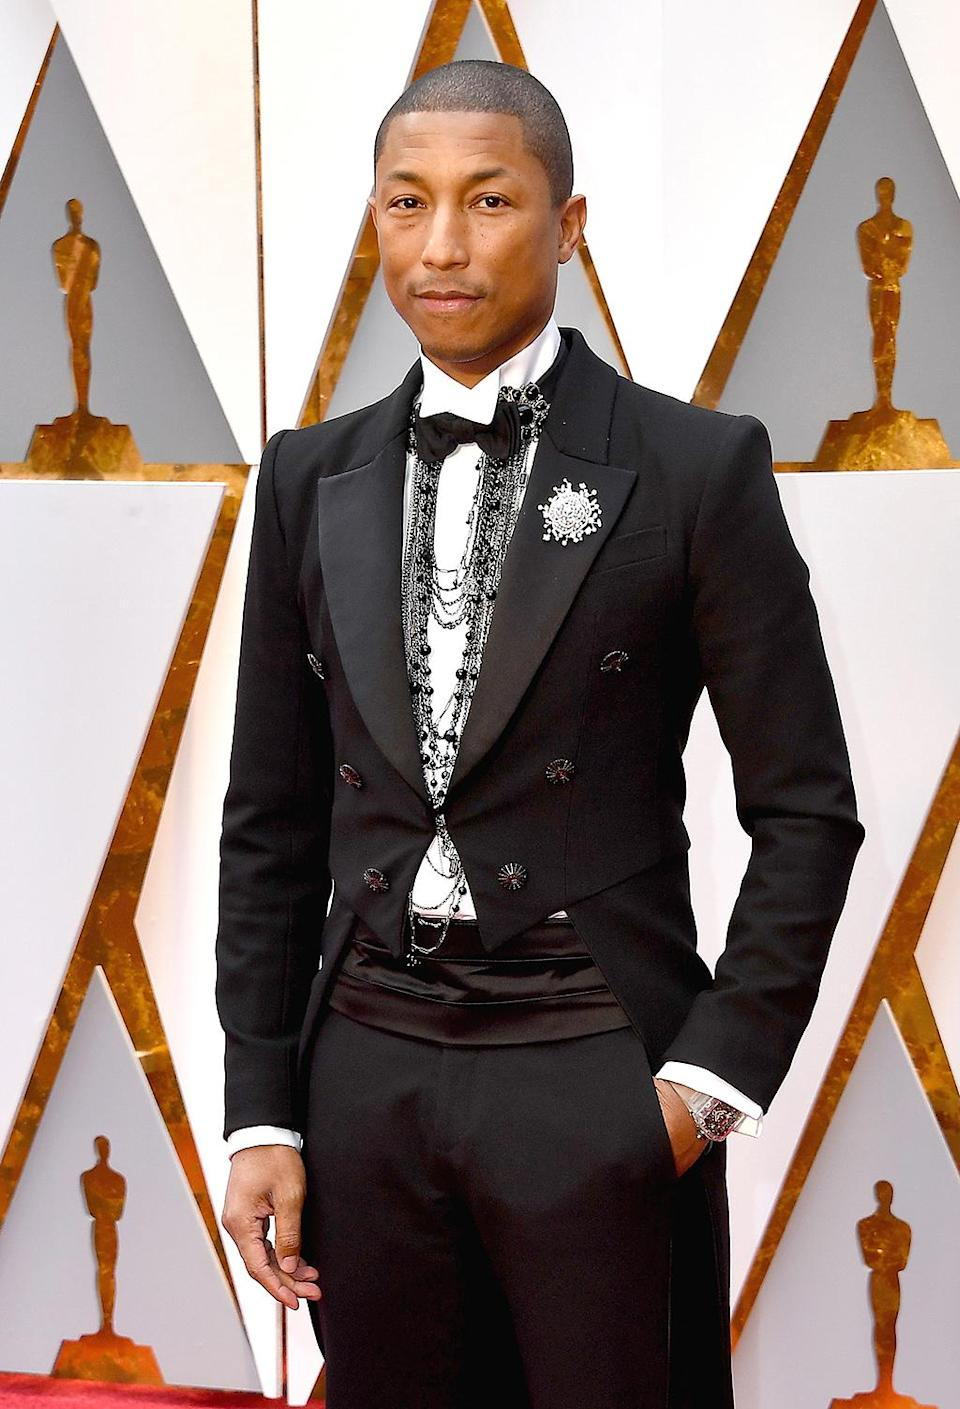 <p>Musician Pharrell Williams attends the 89th Annual Academy Awards at Hollywood & Highland Centeron Feb. 26, 2017. (Photo by Steve Granitz/WireImage) </p>